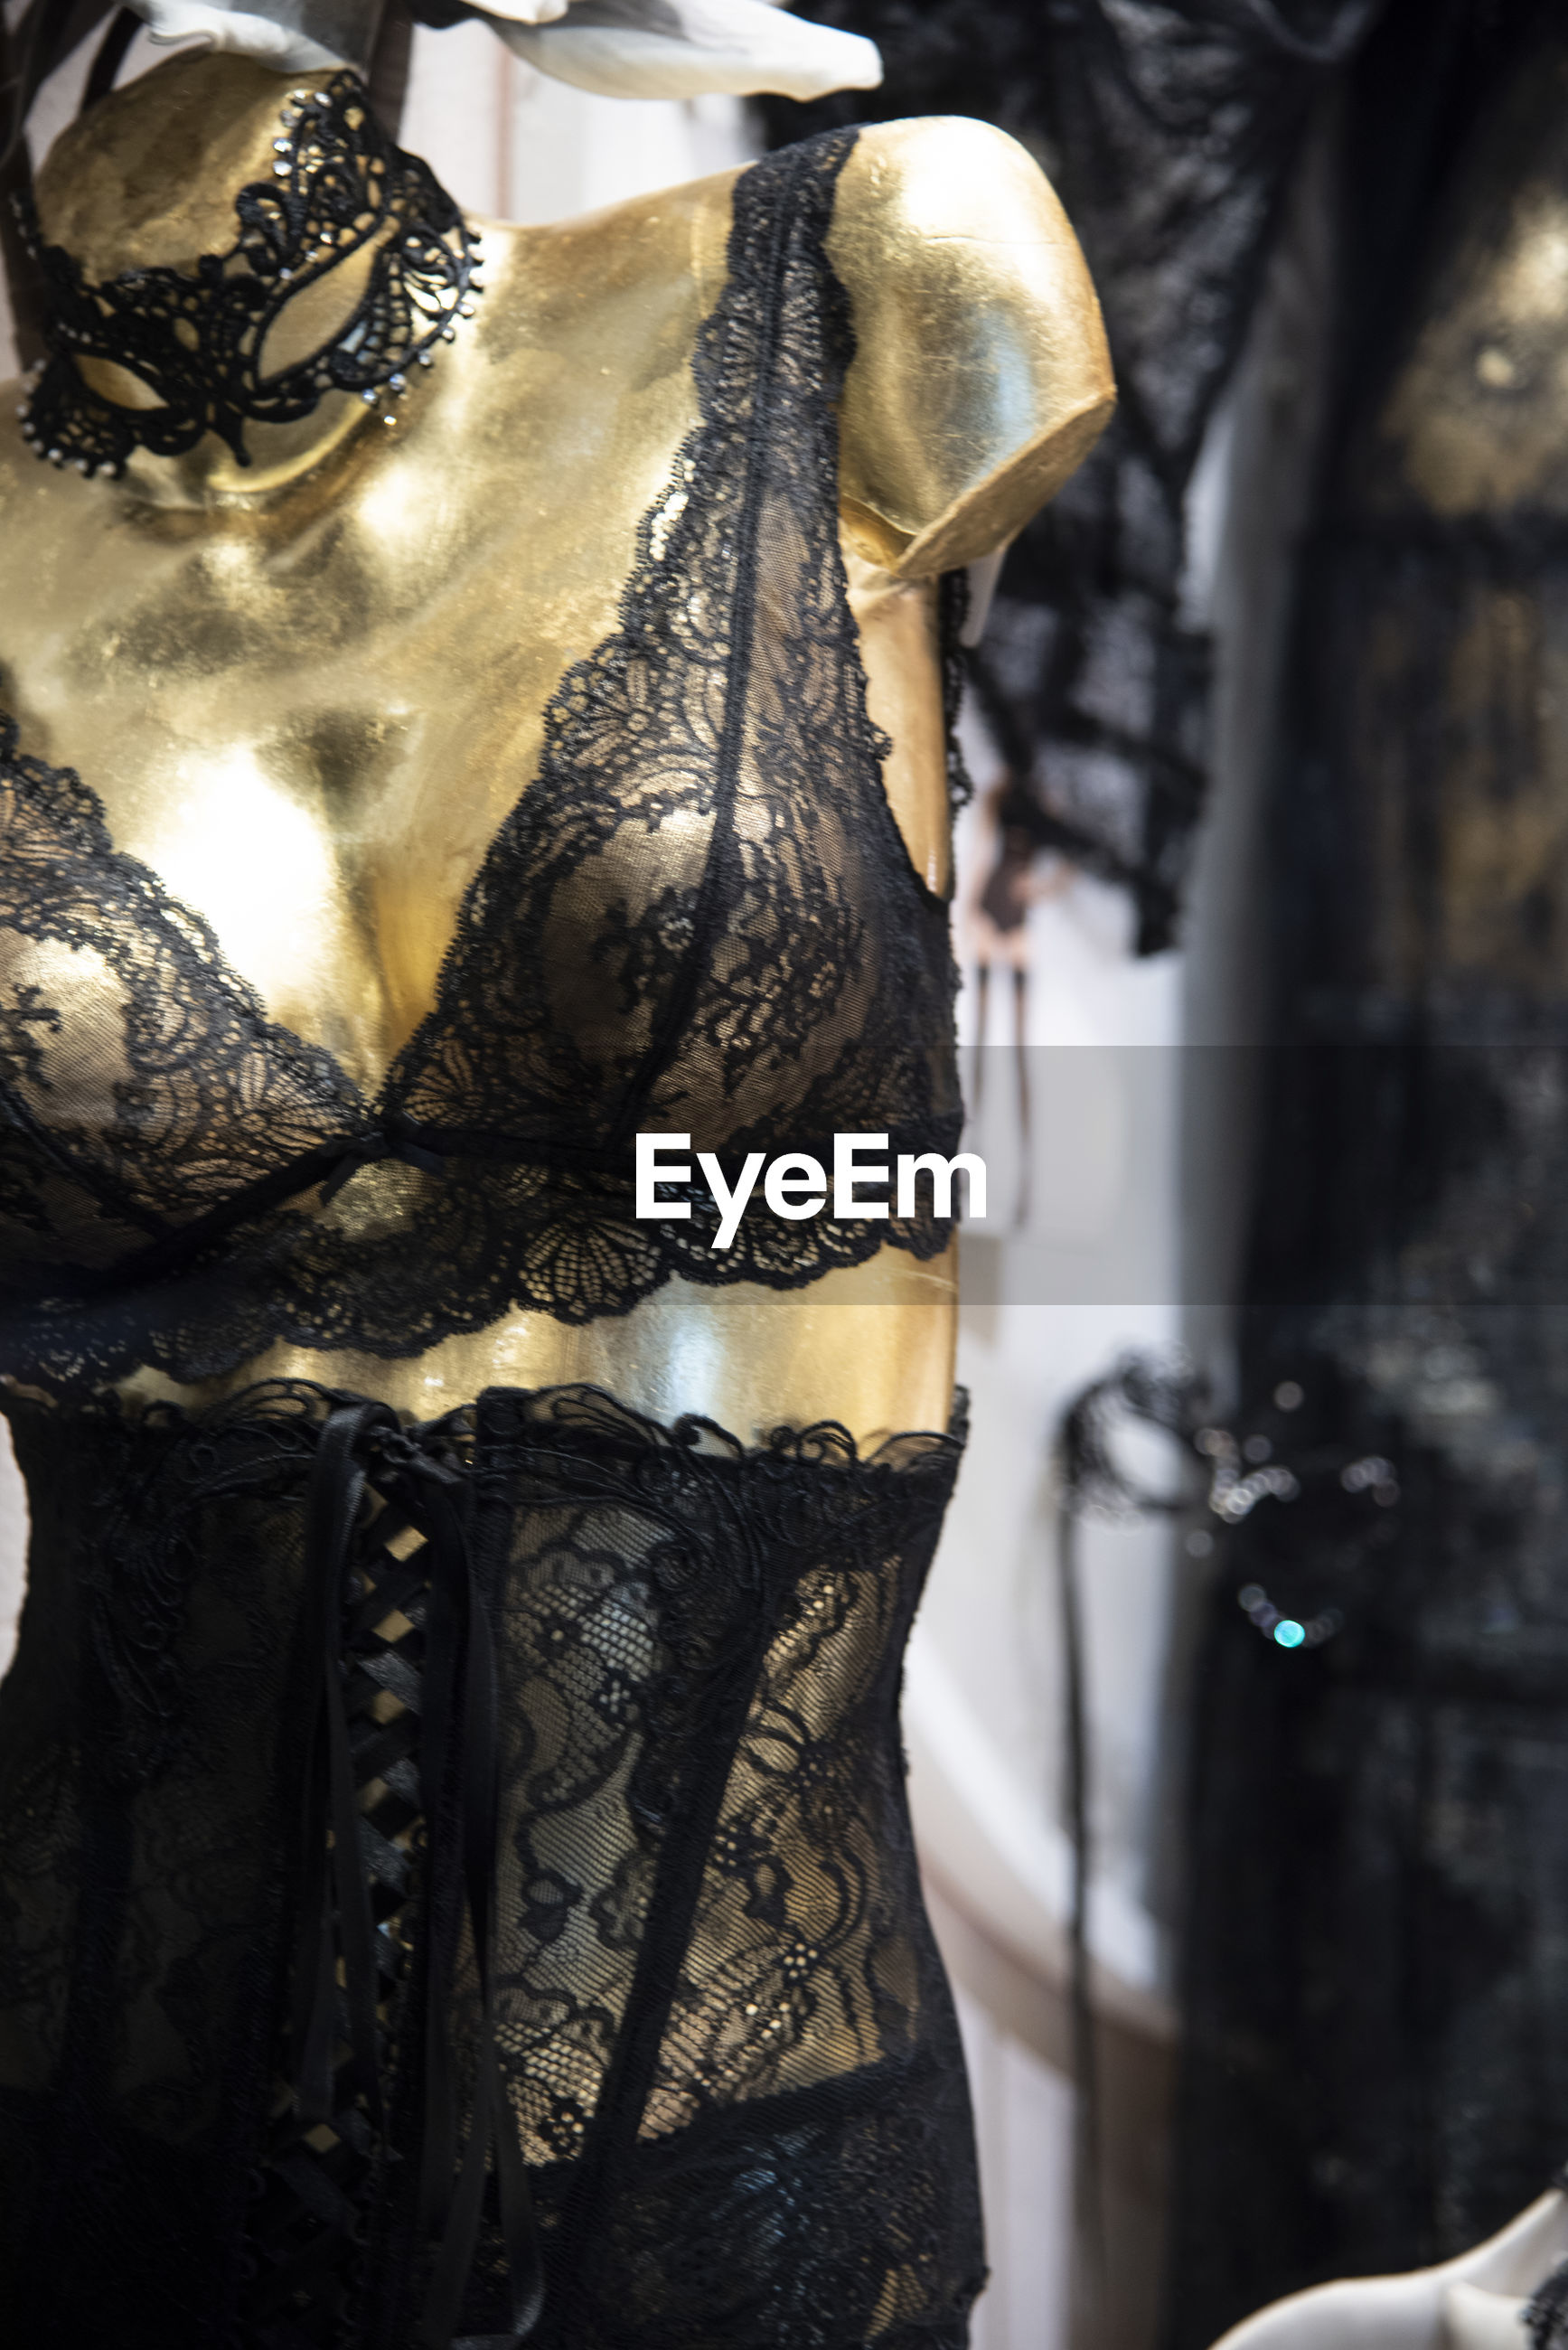 Black lace lingerie on gold mannequin. transparent woman bra and bustier.